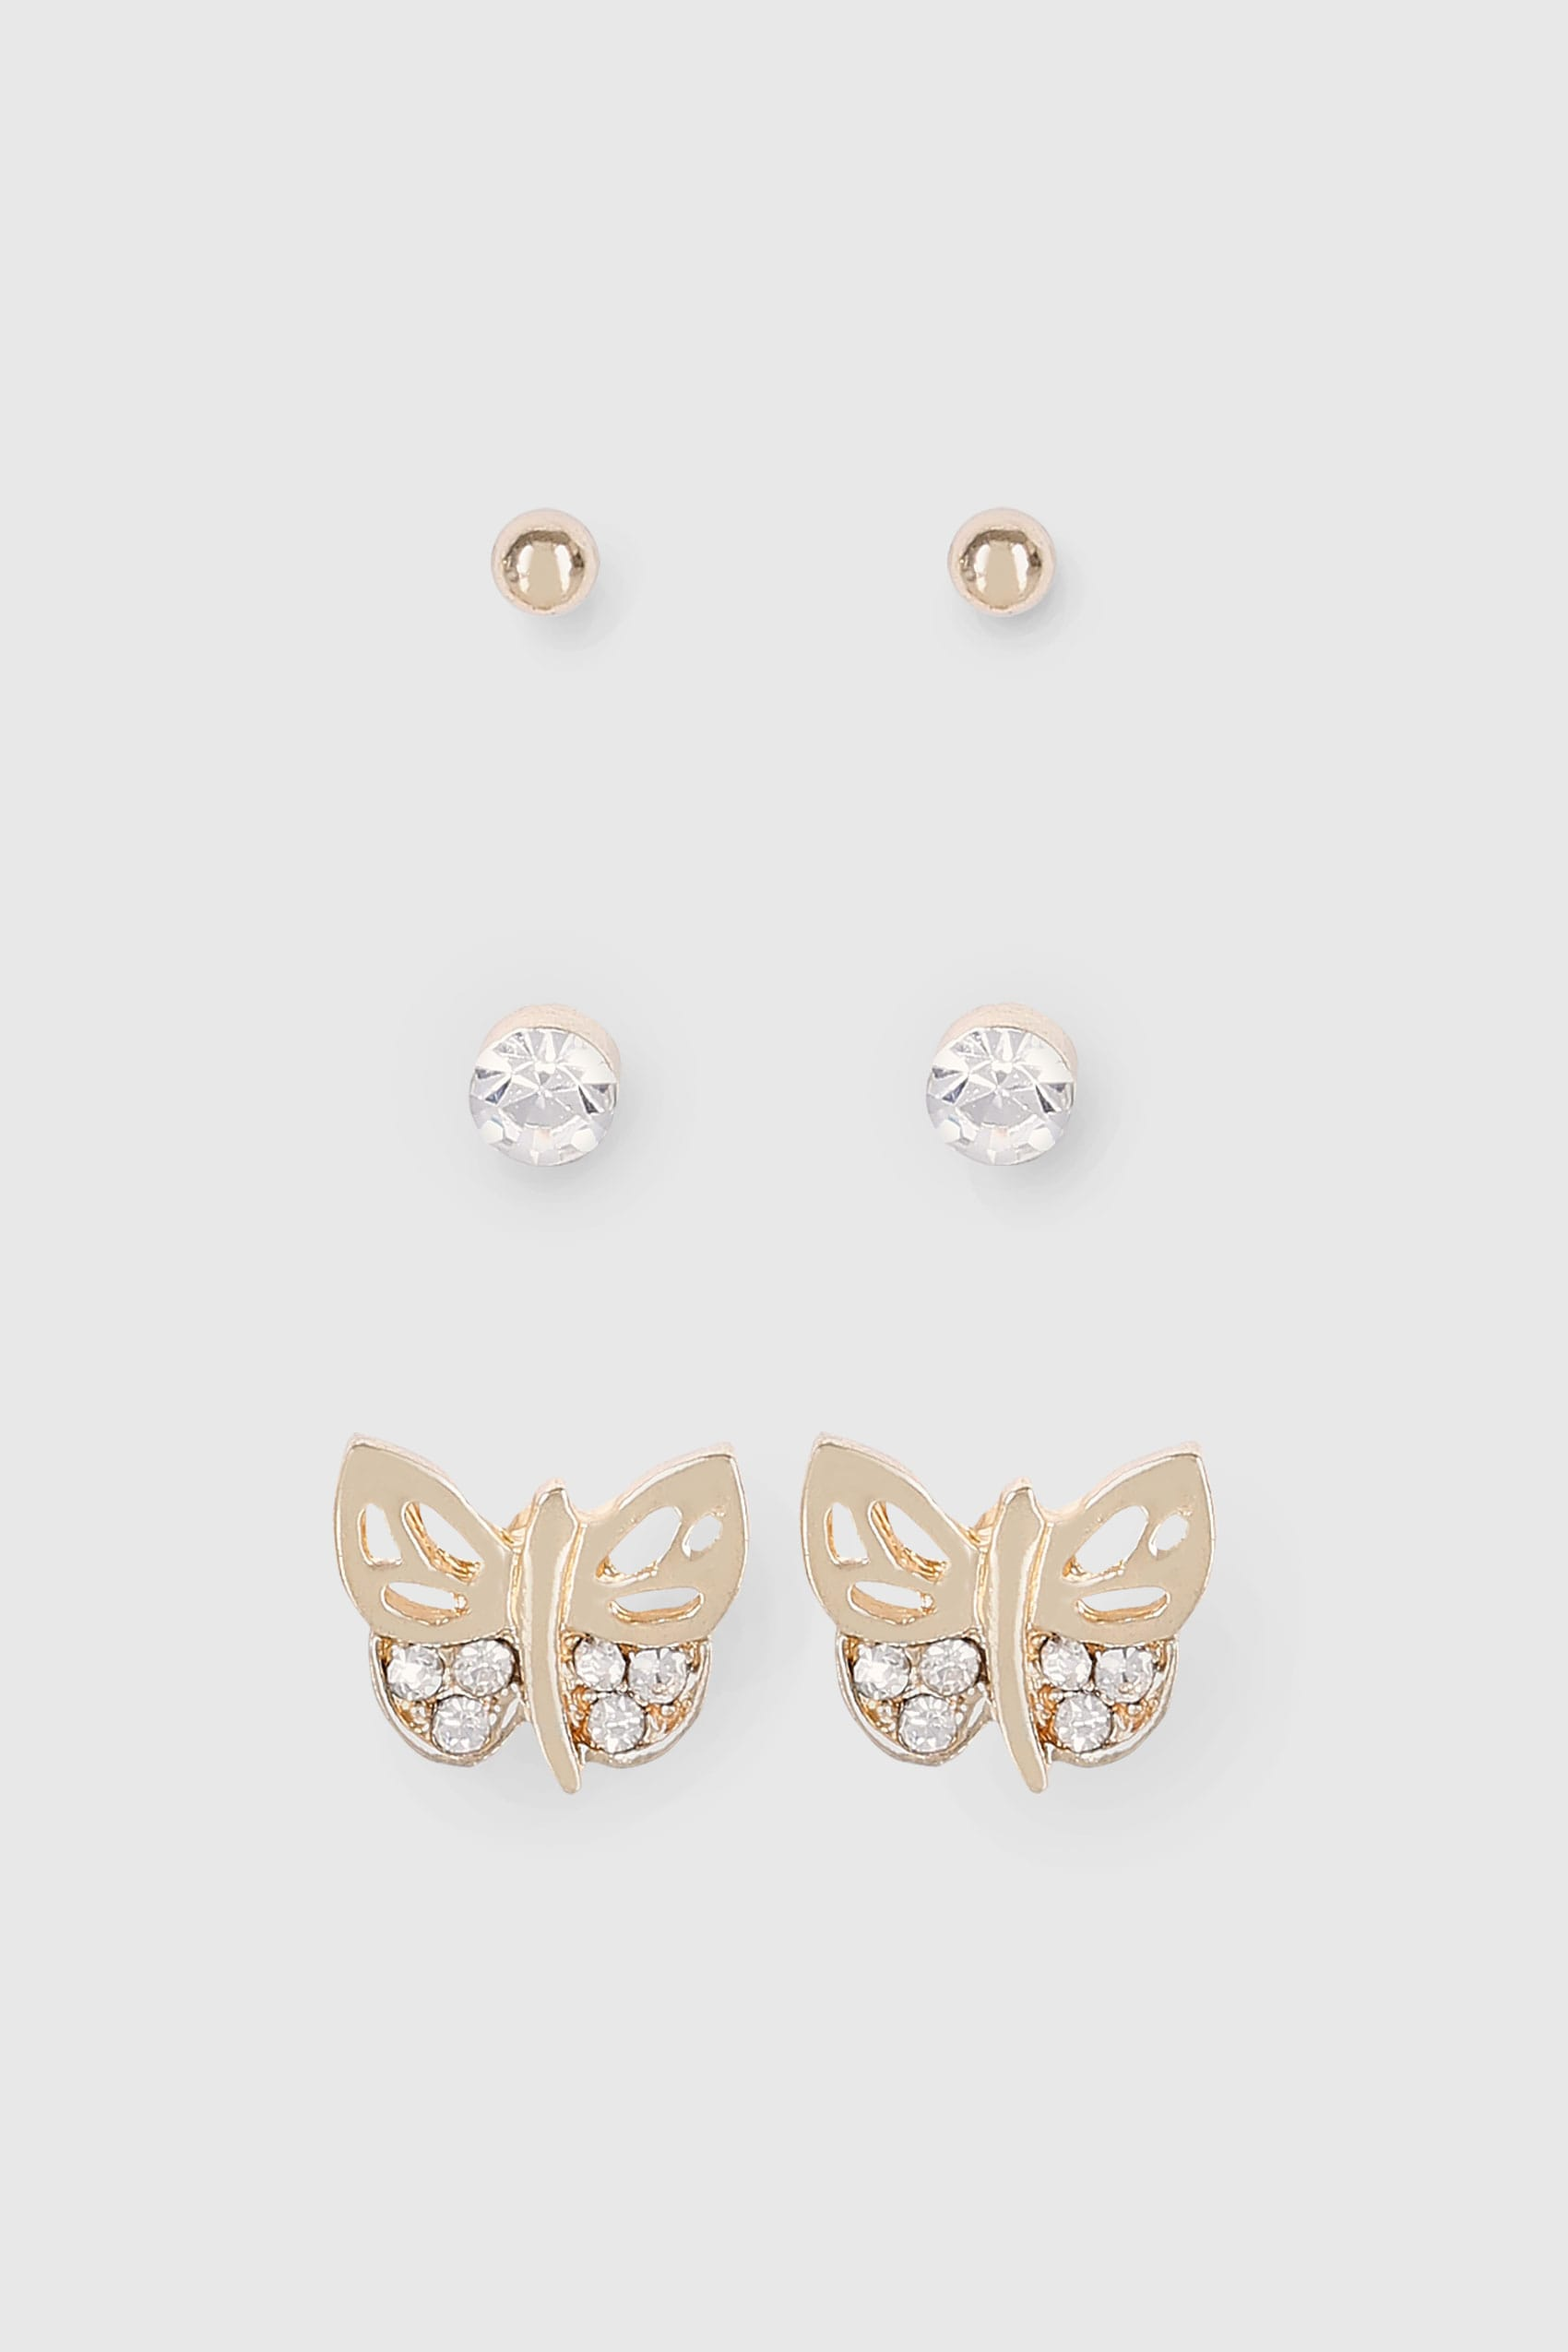 buyolivia butterfly com burton john online main earrings lewis pdp rsp stud at rose gold olivia johnlewis